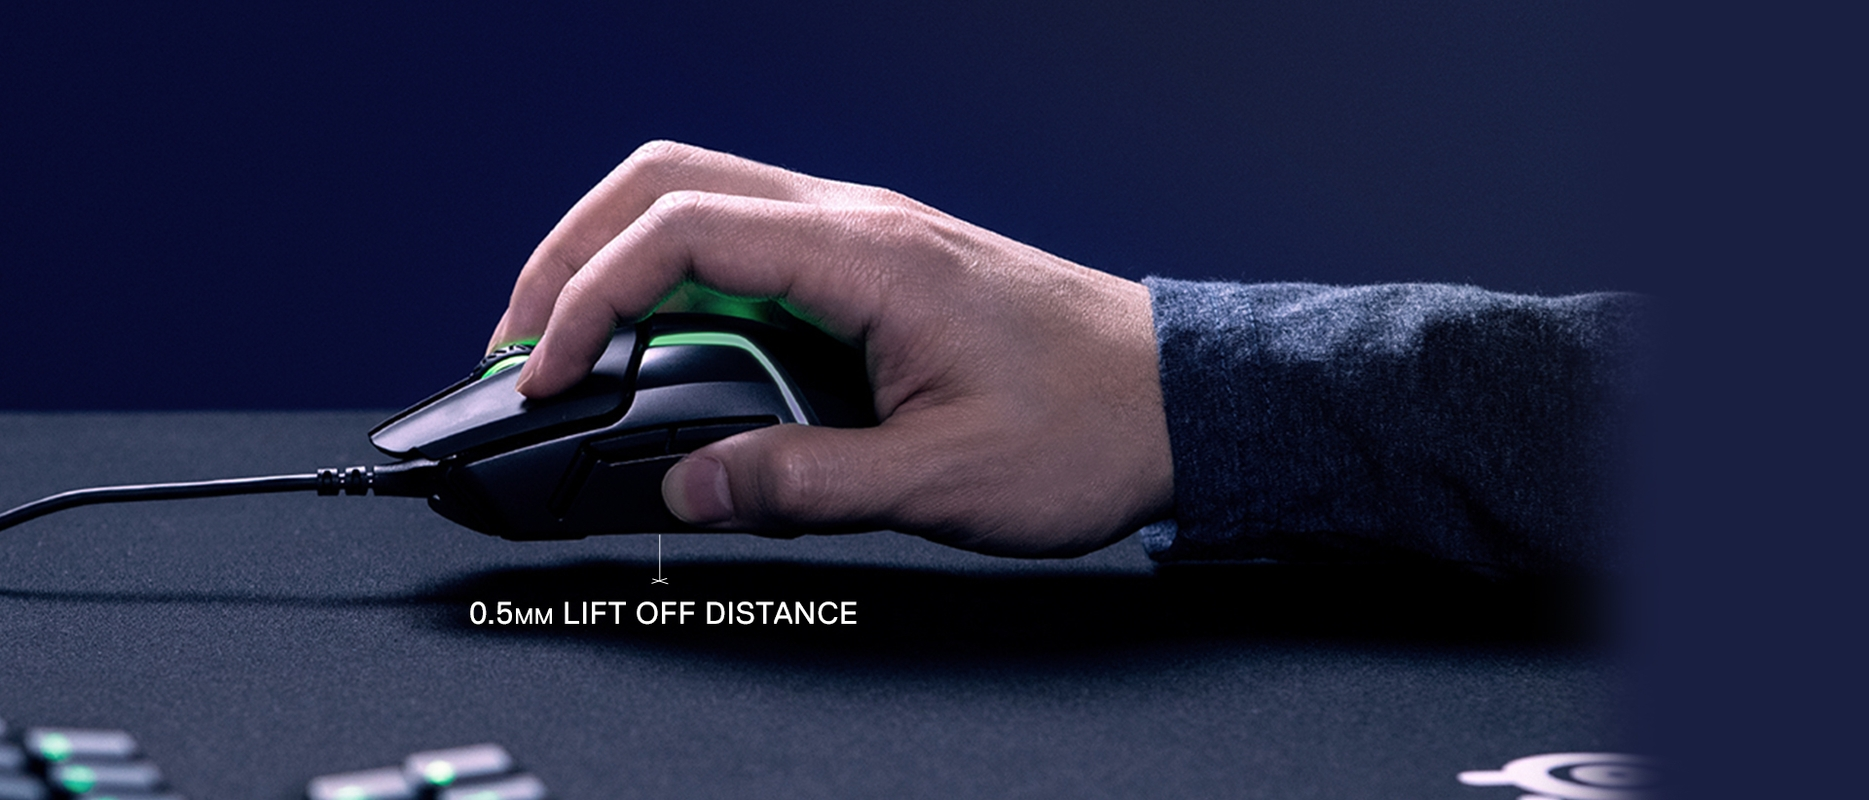 Hand holding Rival 600 gaming mouse showing 0.5mm lift off distance